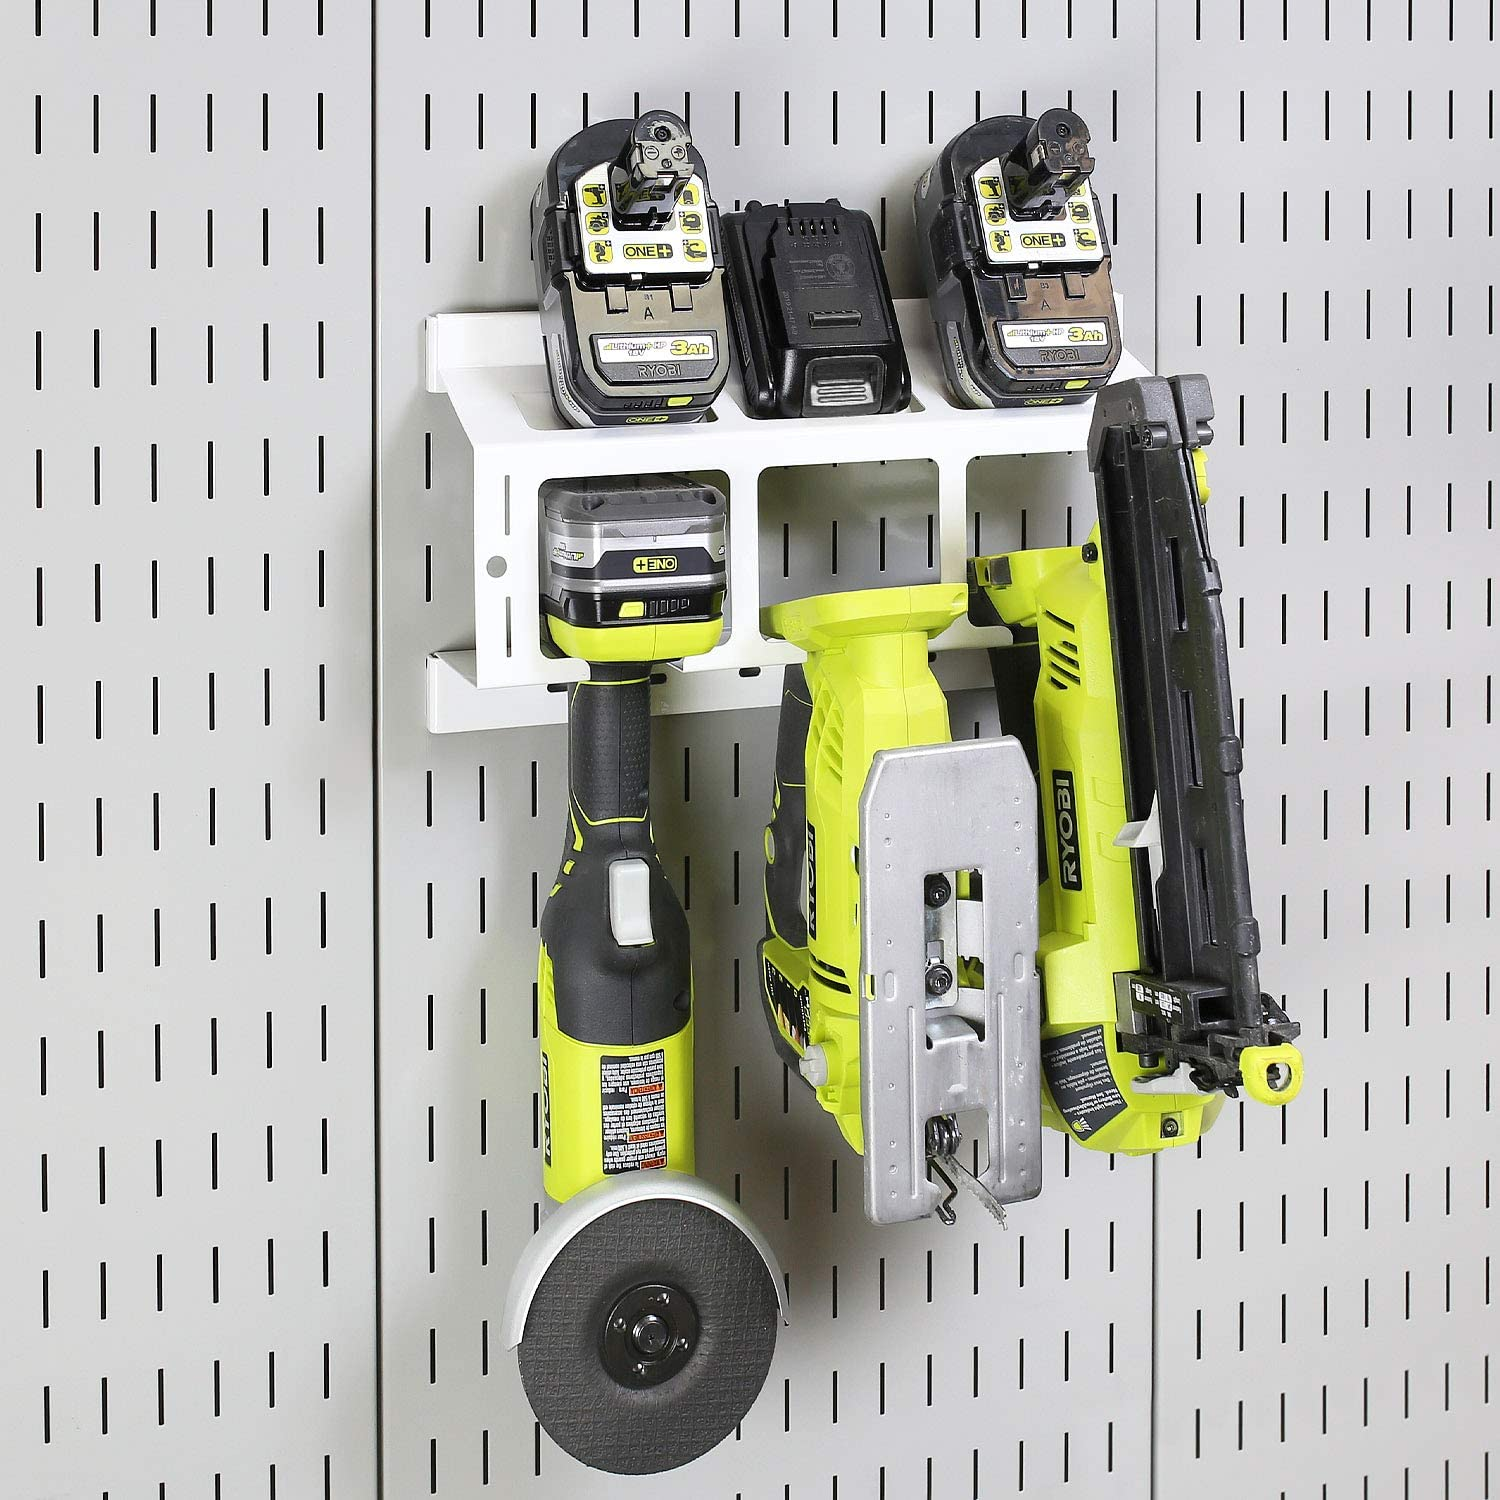 Compact Impact Drill Battery Power Tool Pegboard Organizer for Wall Control Pegboard Wall Control Drill Holder Power Tool Storage Rack Black